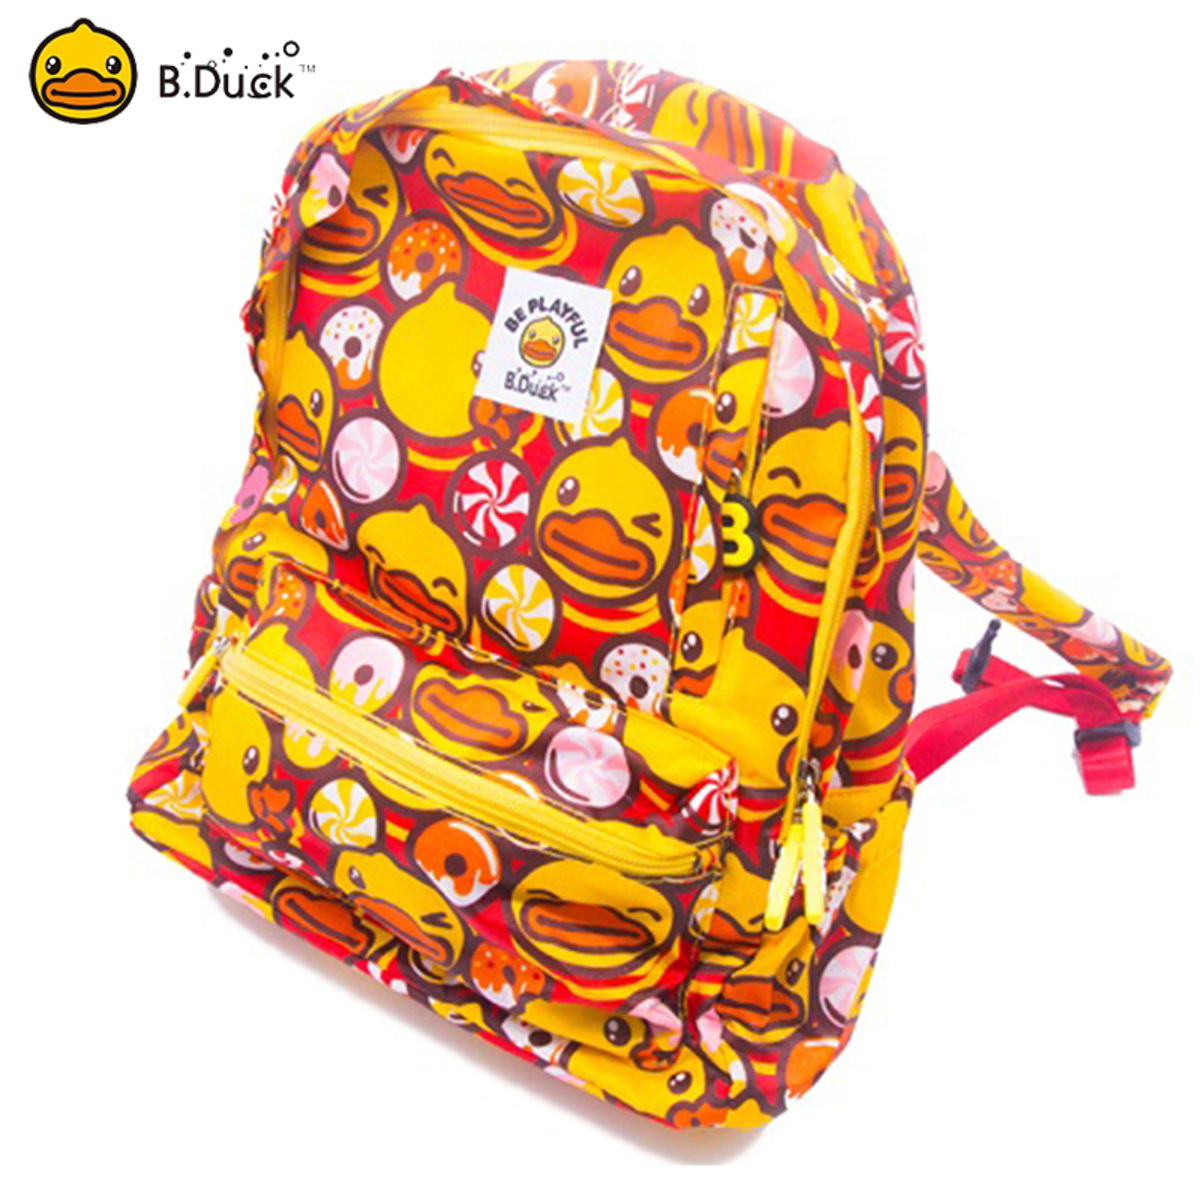 B.Duck Backpack (Dessert)